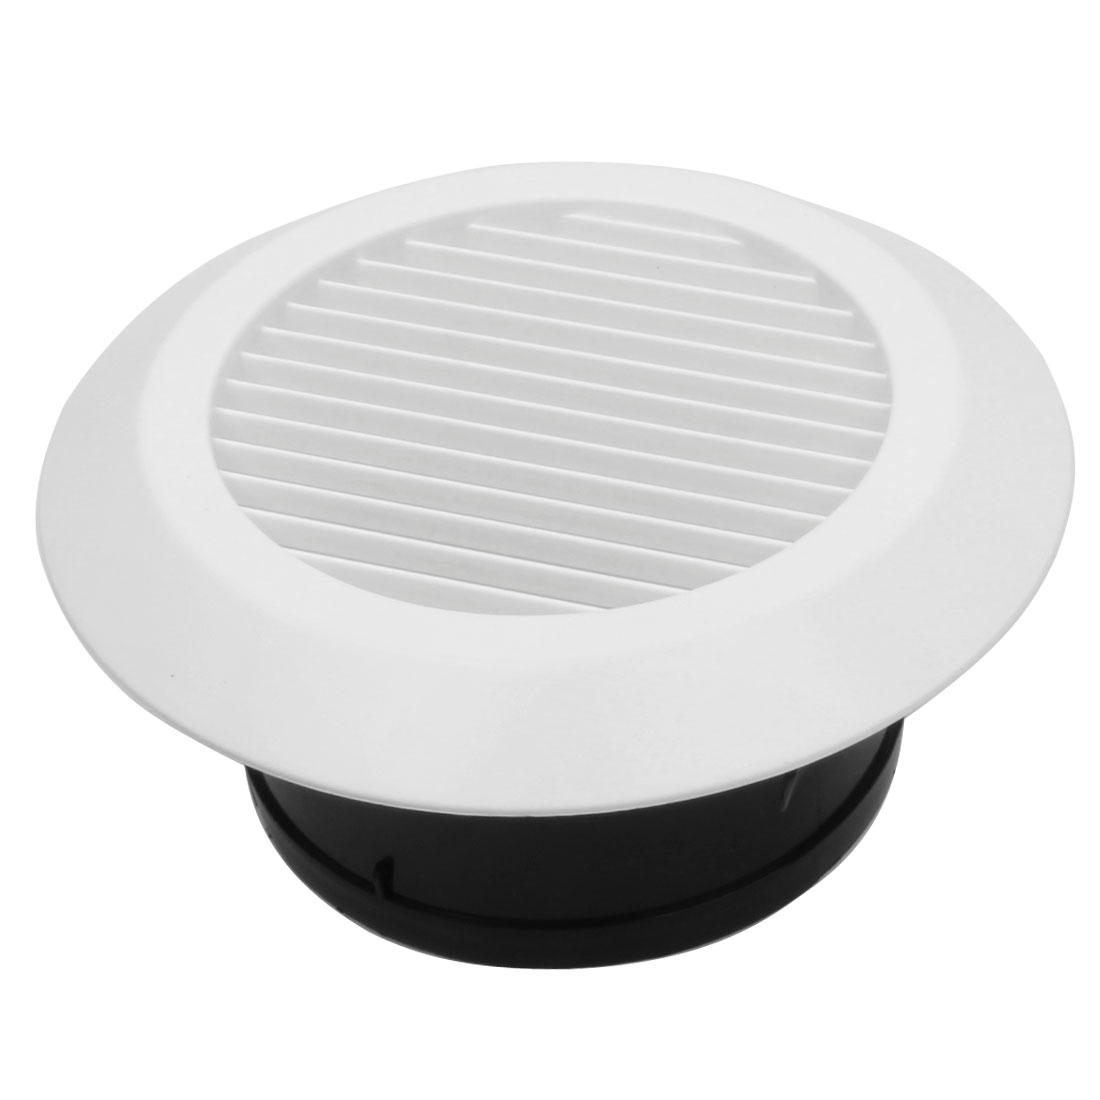 150mm Mounting Dia Round Air Vent Outlet Straight Louver Ventilation Grill Cover Flange